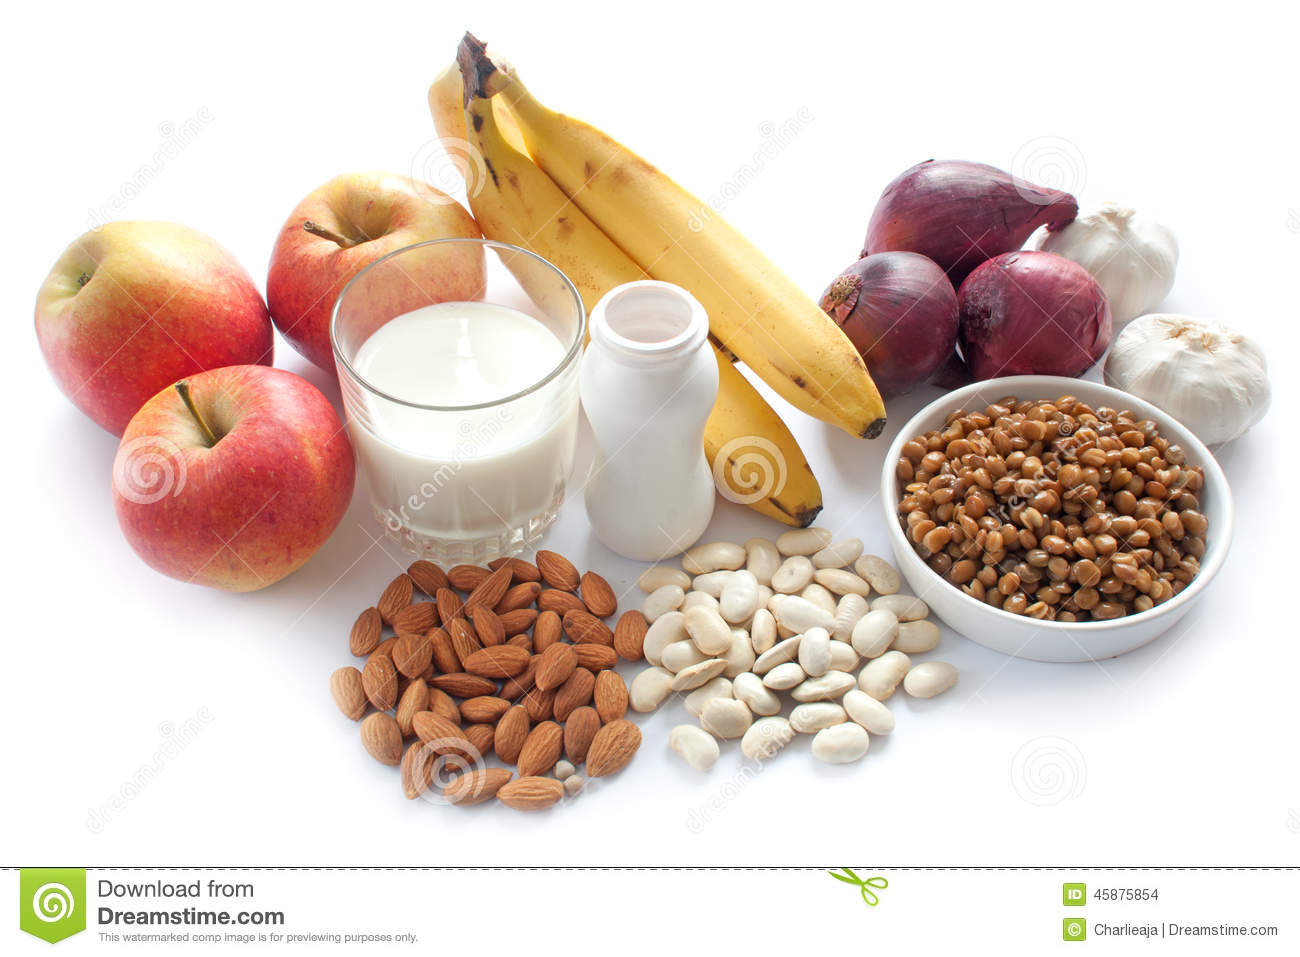 Is Milk Actually Good for Gastritis